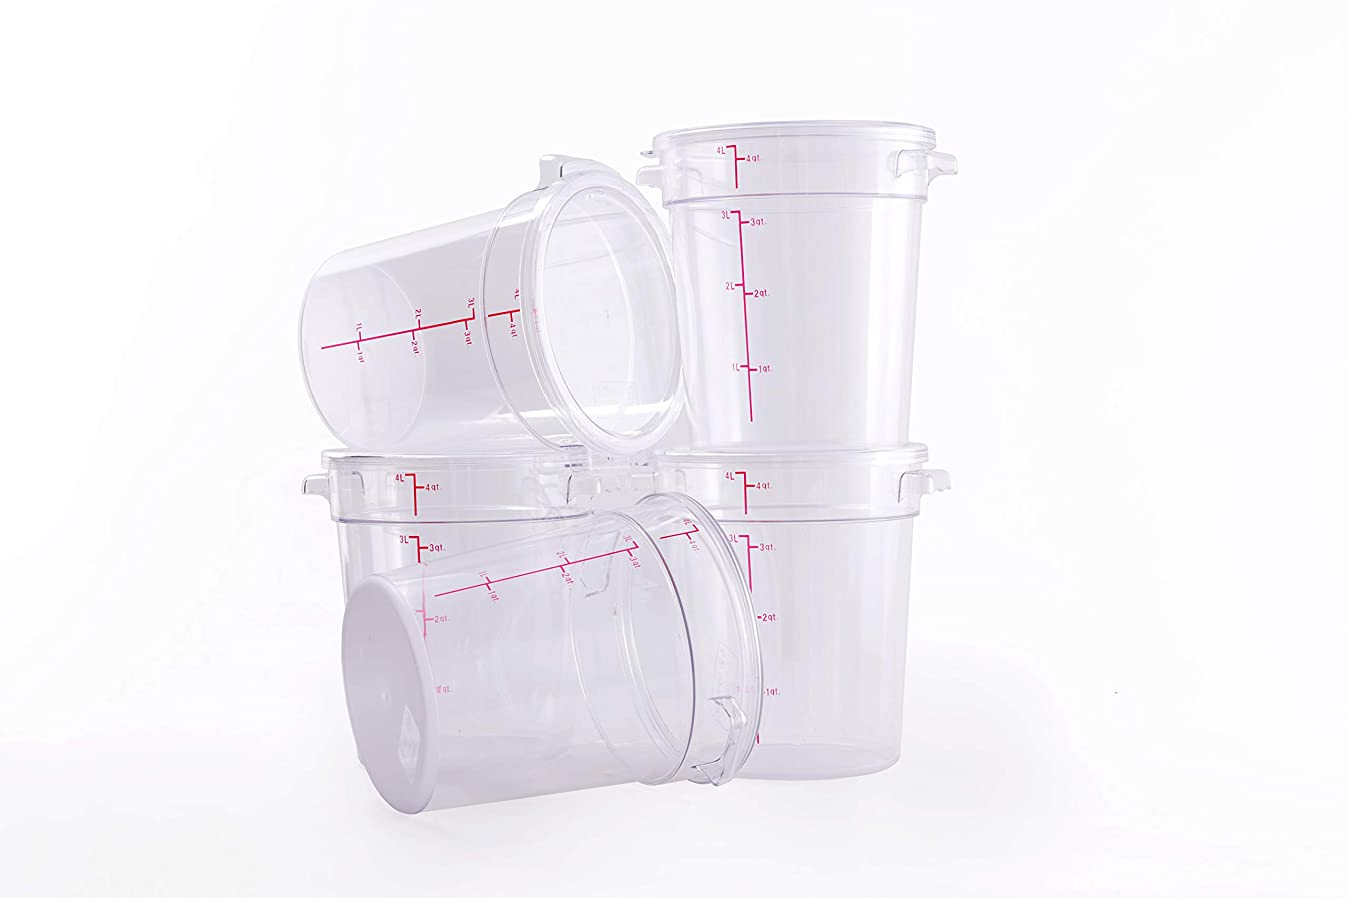 Hakka 4 Qt Commercial Grade Round Food Storage Containers with Lids,Polycarbonate,Clear - Case of 5